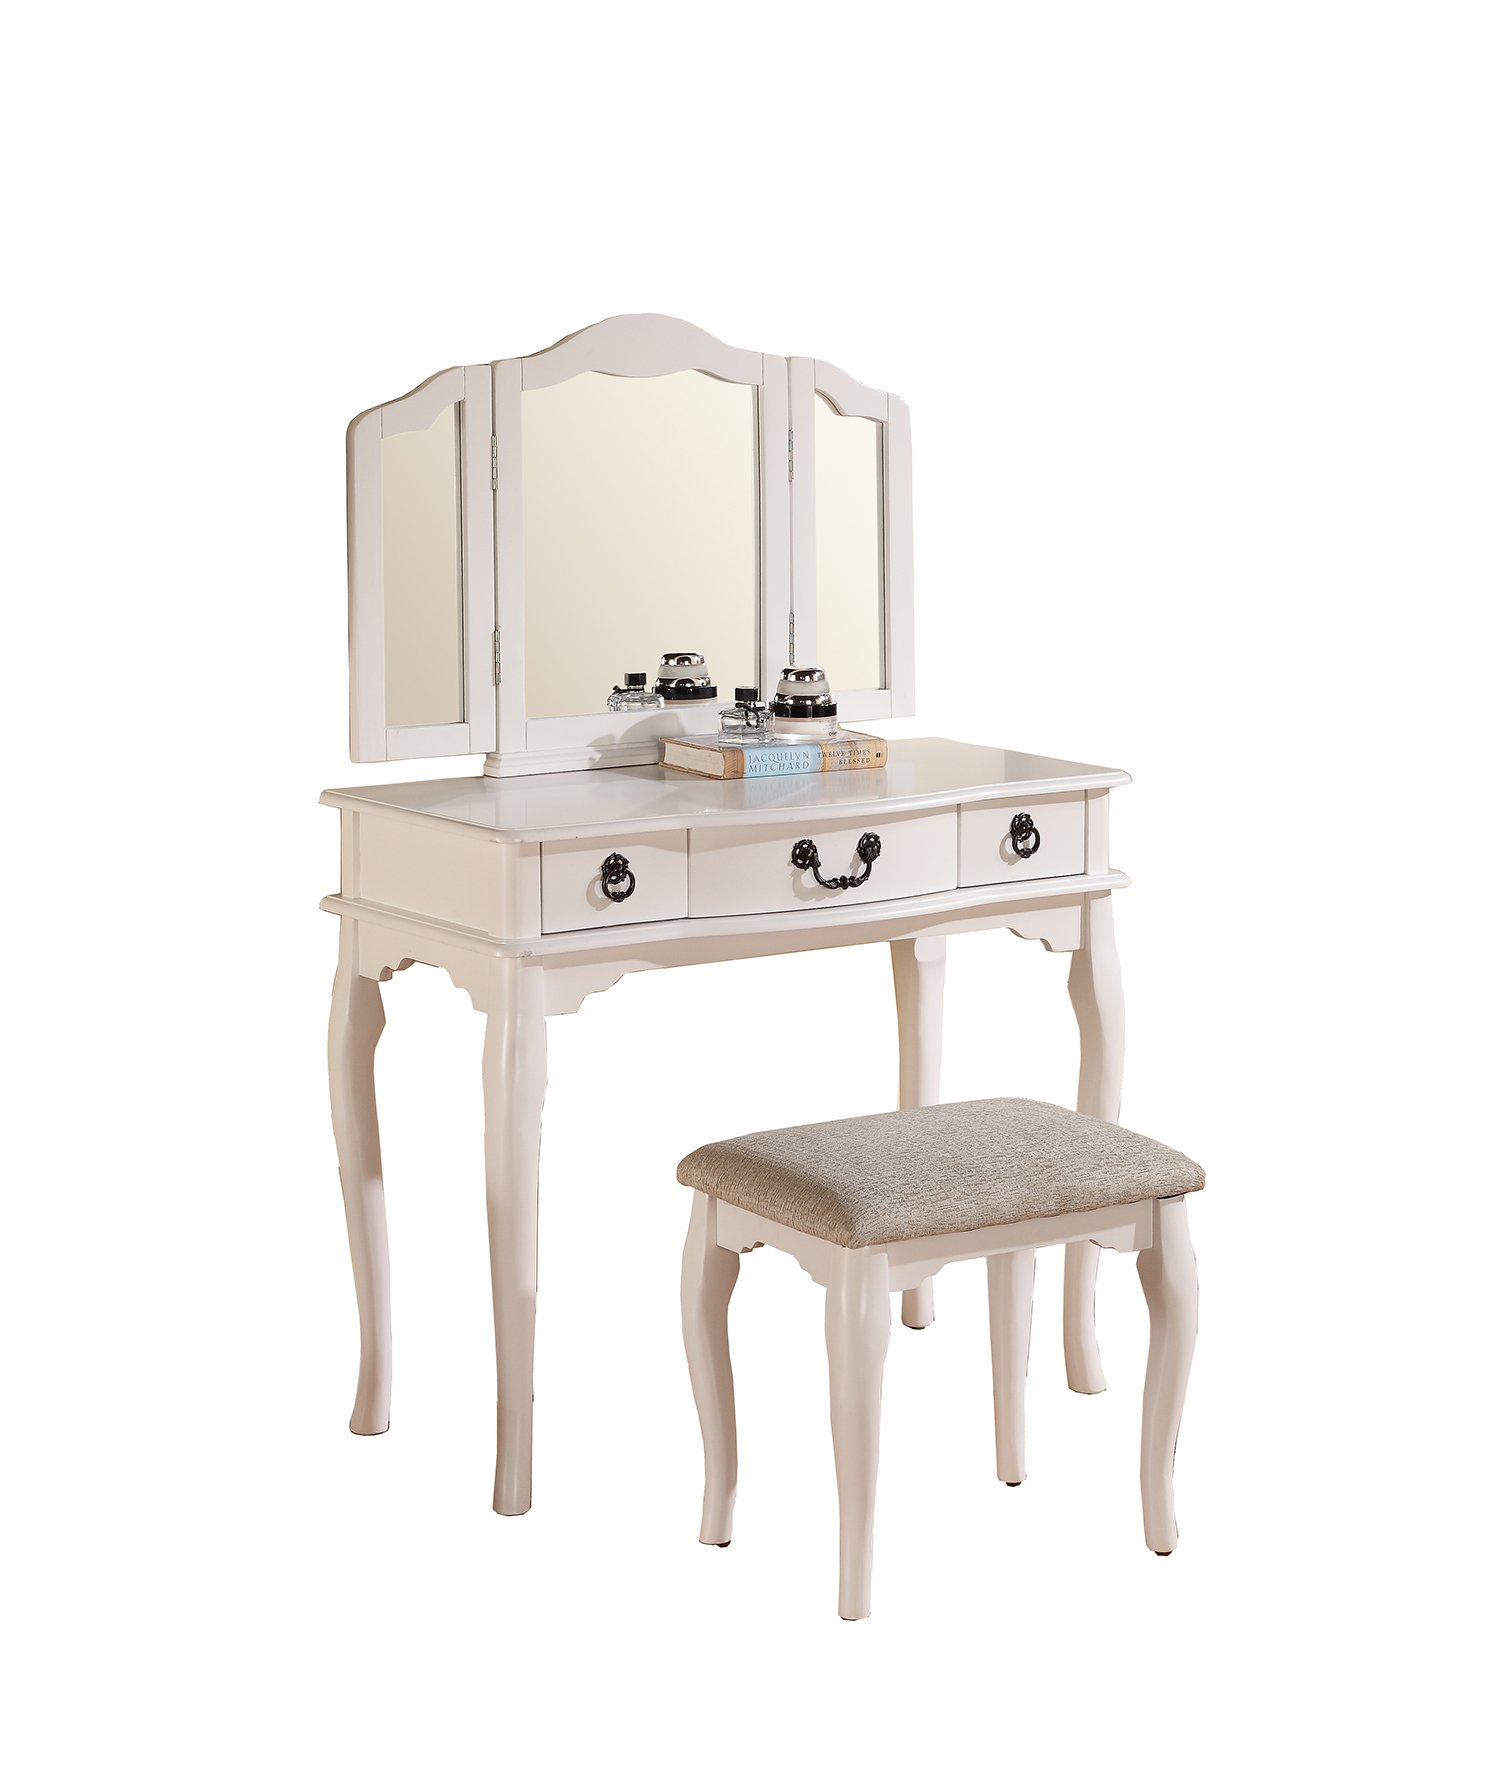 Poundex Bobkona Susana Tri-fold Mirror Vanity Table with Stool Set, White